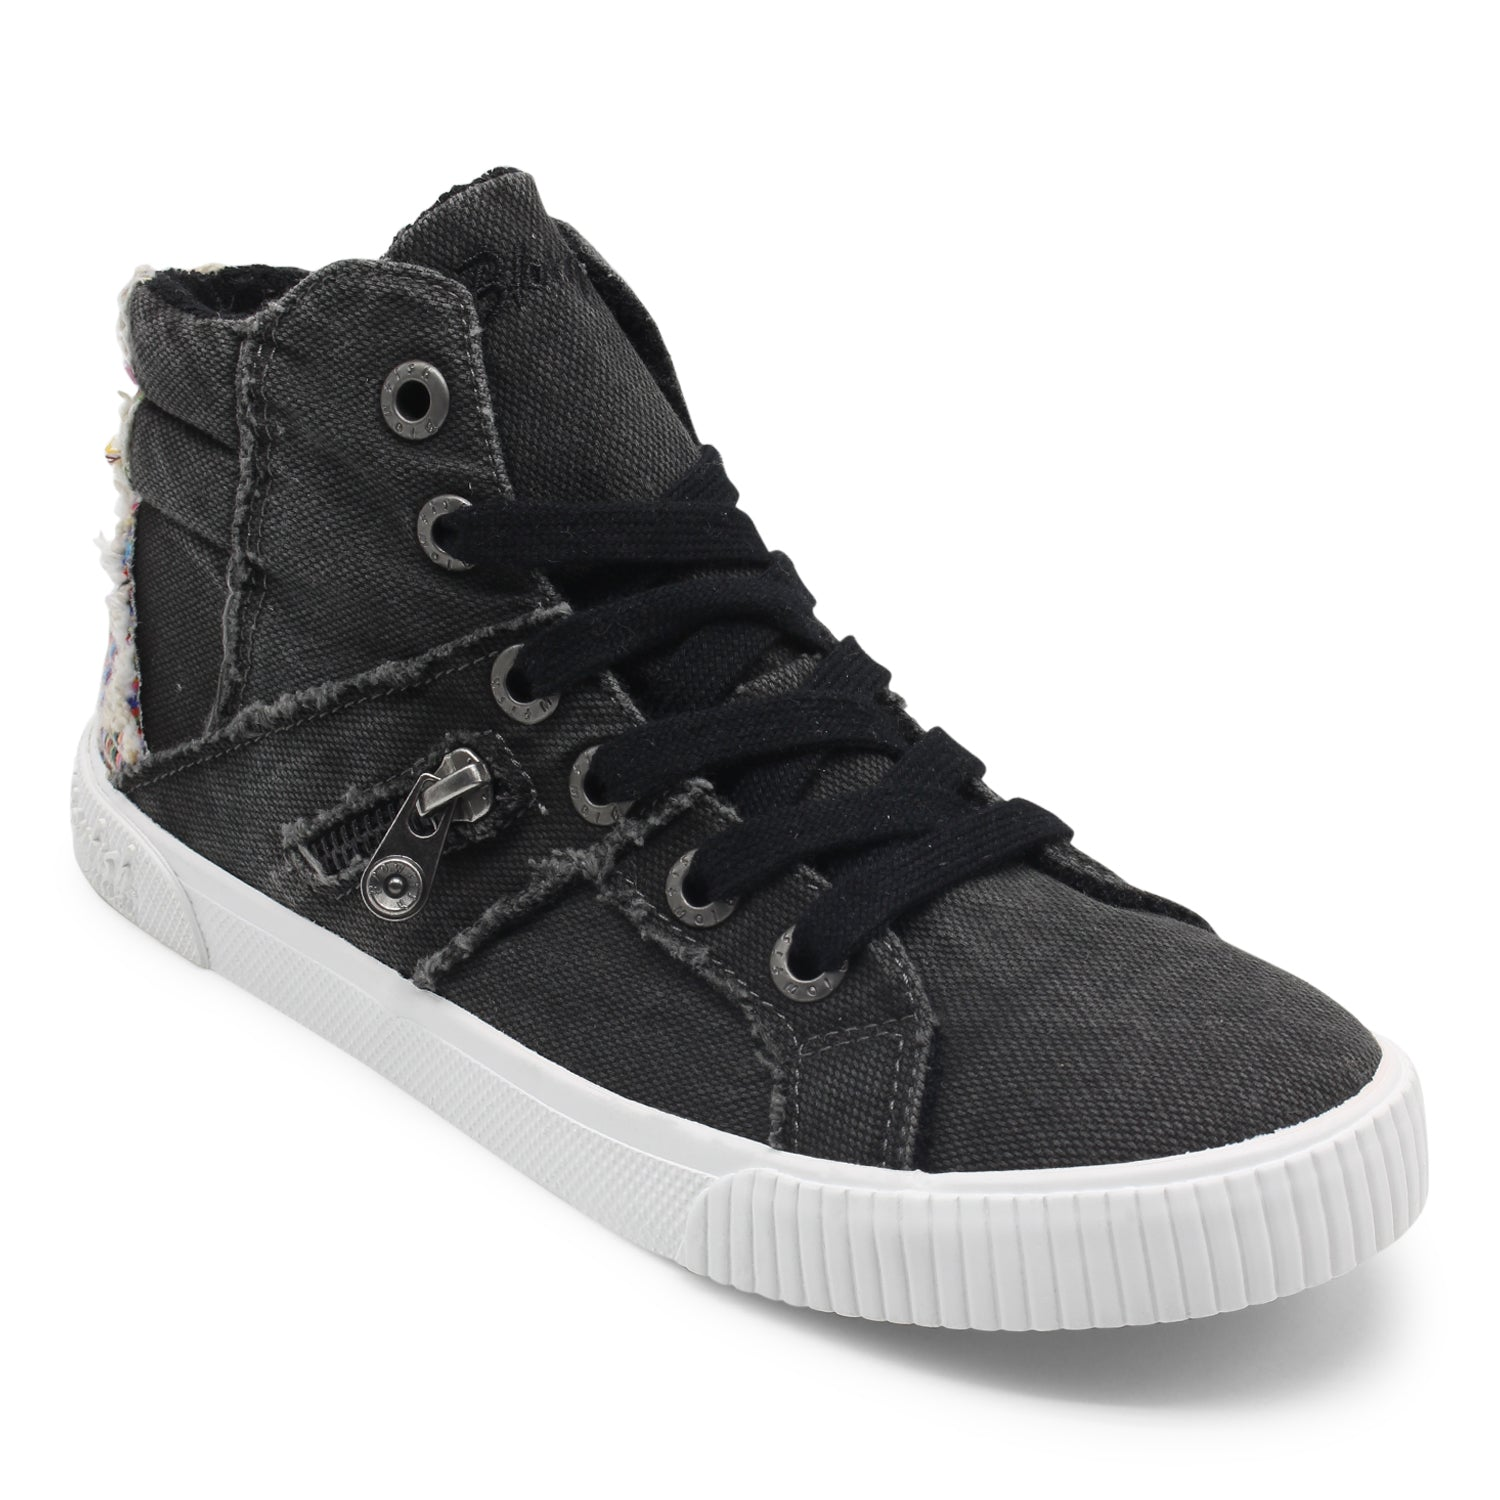 'Blowfish Malibu' Women's Fruitcake High Top - Black